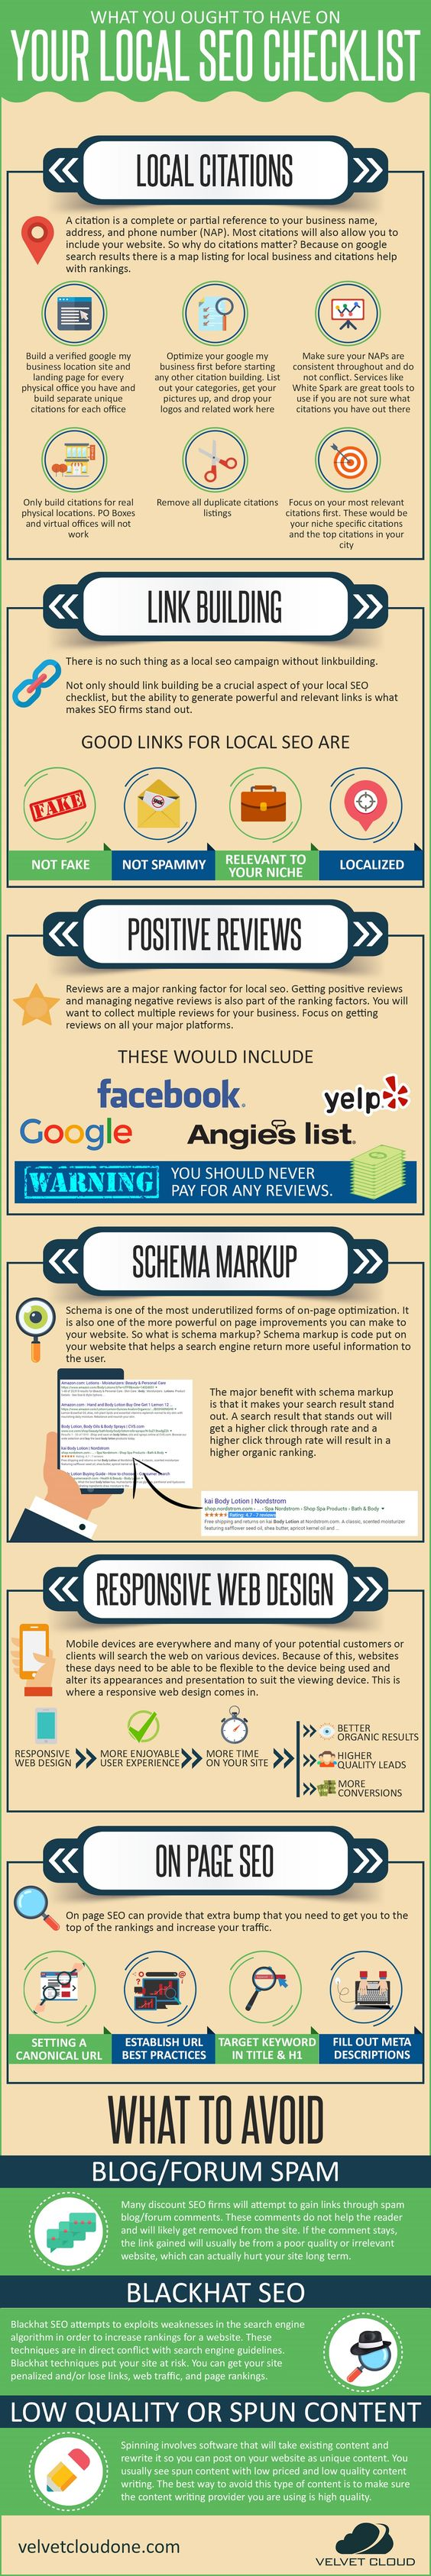 Your Local SEO Checklist (Infographic) article image by Think Big Online Marketing